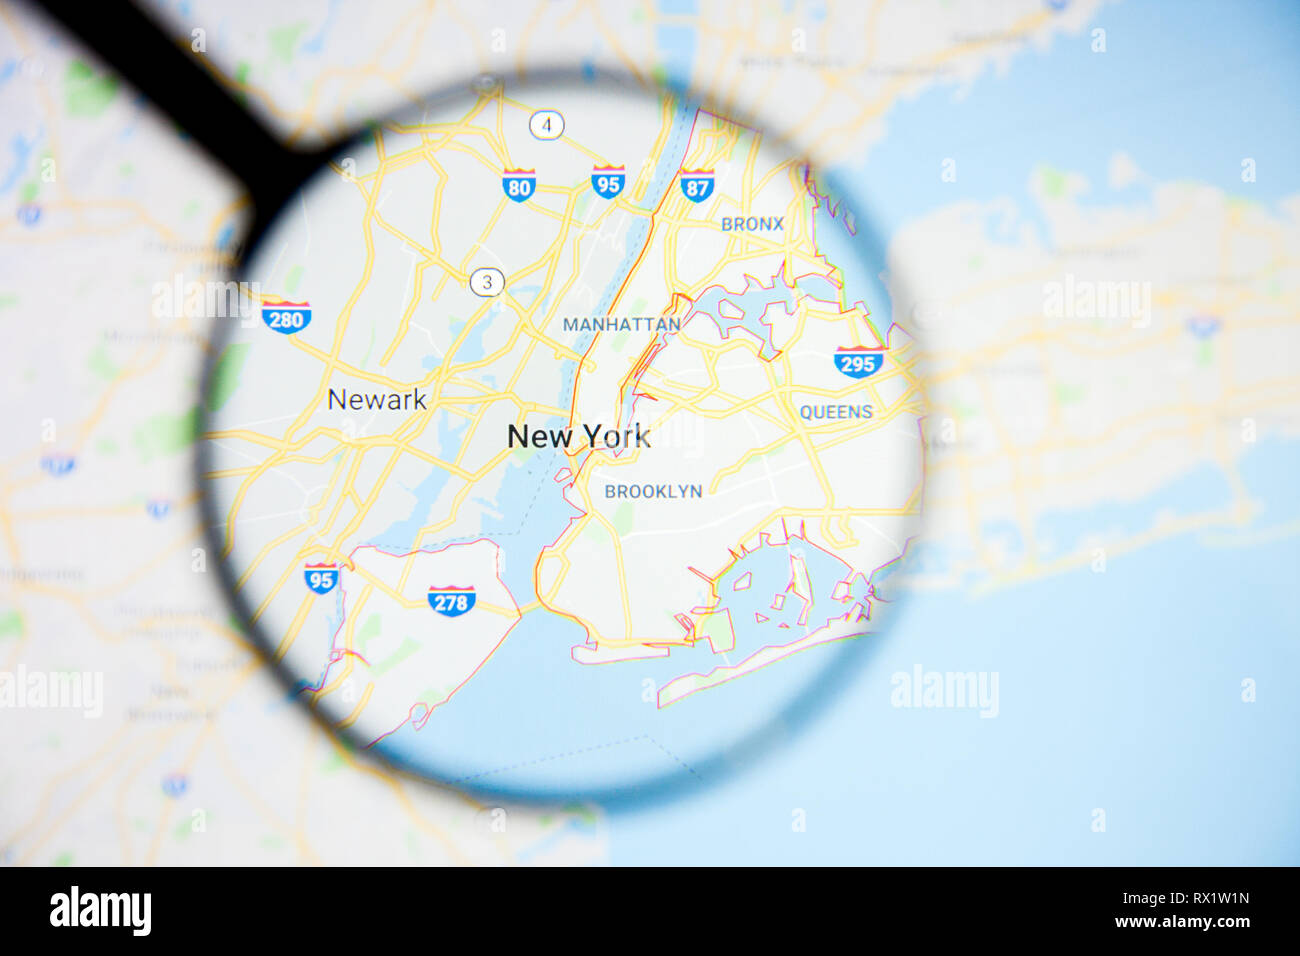 New York city visualization illustrative concept on display screen through magnifying glass - Stock Image